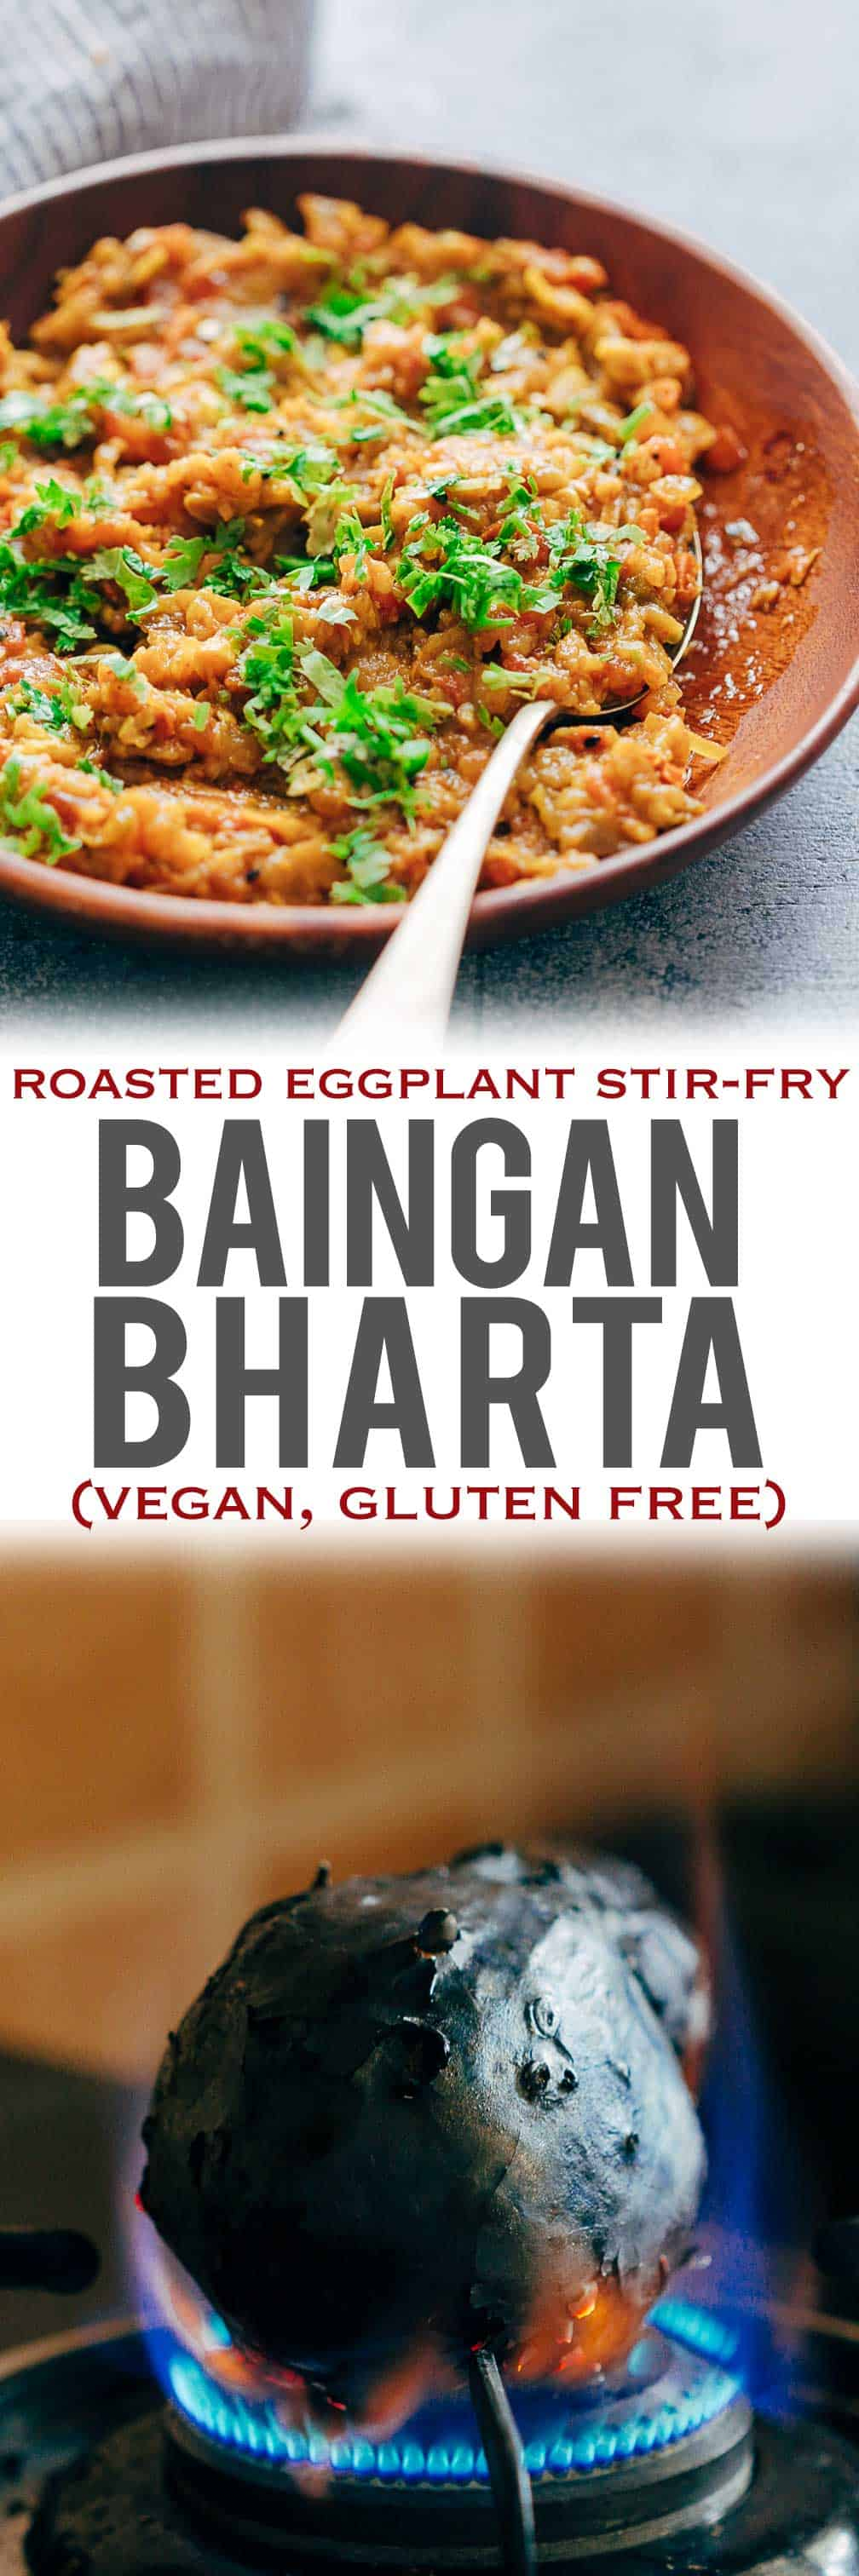 This easy baingan bharta recipe is one of those Indian curries thats going to be a sure shot hit at home! Baingan (eggplant/aubergine) is studded with garlic and roasted on an open flame, and then stir-fried with aromatics for the most delicious smoky flavor. This recipe comes with a lot of tips about the eggplant and directions for making it in the oven too! Serve with warm rotis! #myfoodstory #recipe #indian #spices #oven #instantpot #recette